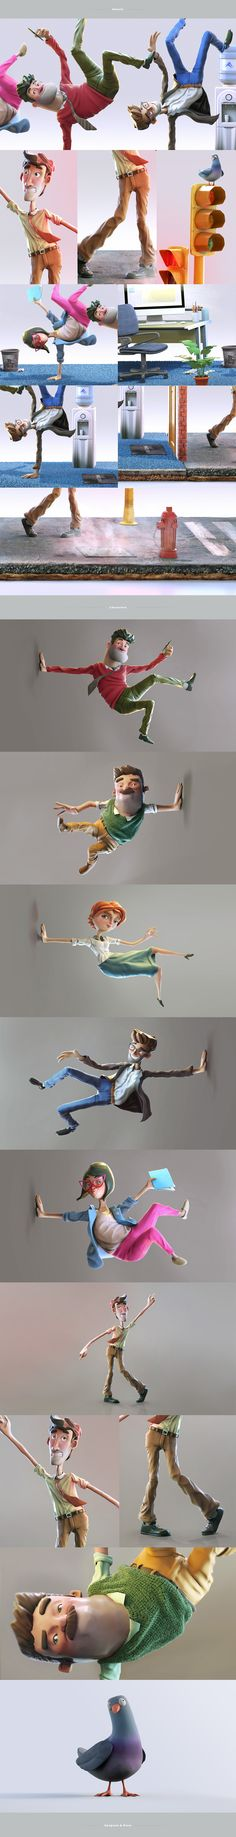 Office Rhythms on Behance ★ Find more at http://www.pinterest.com/competing/